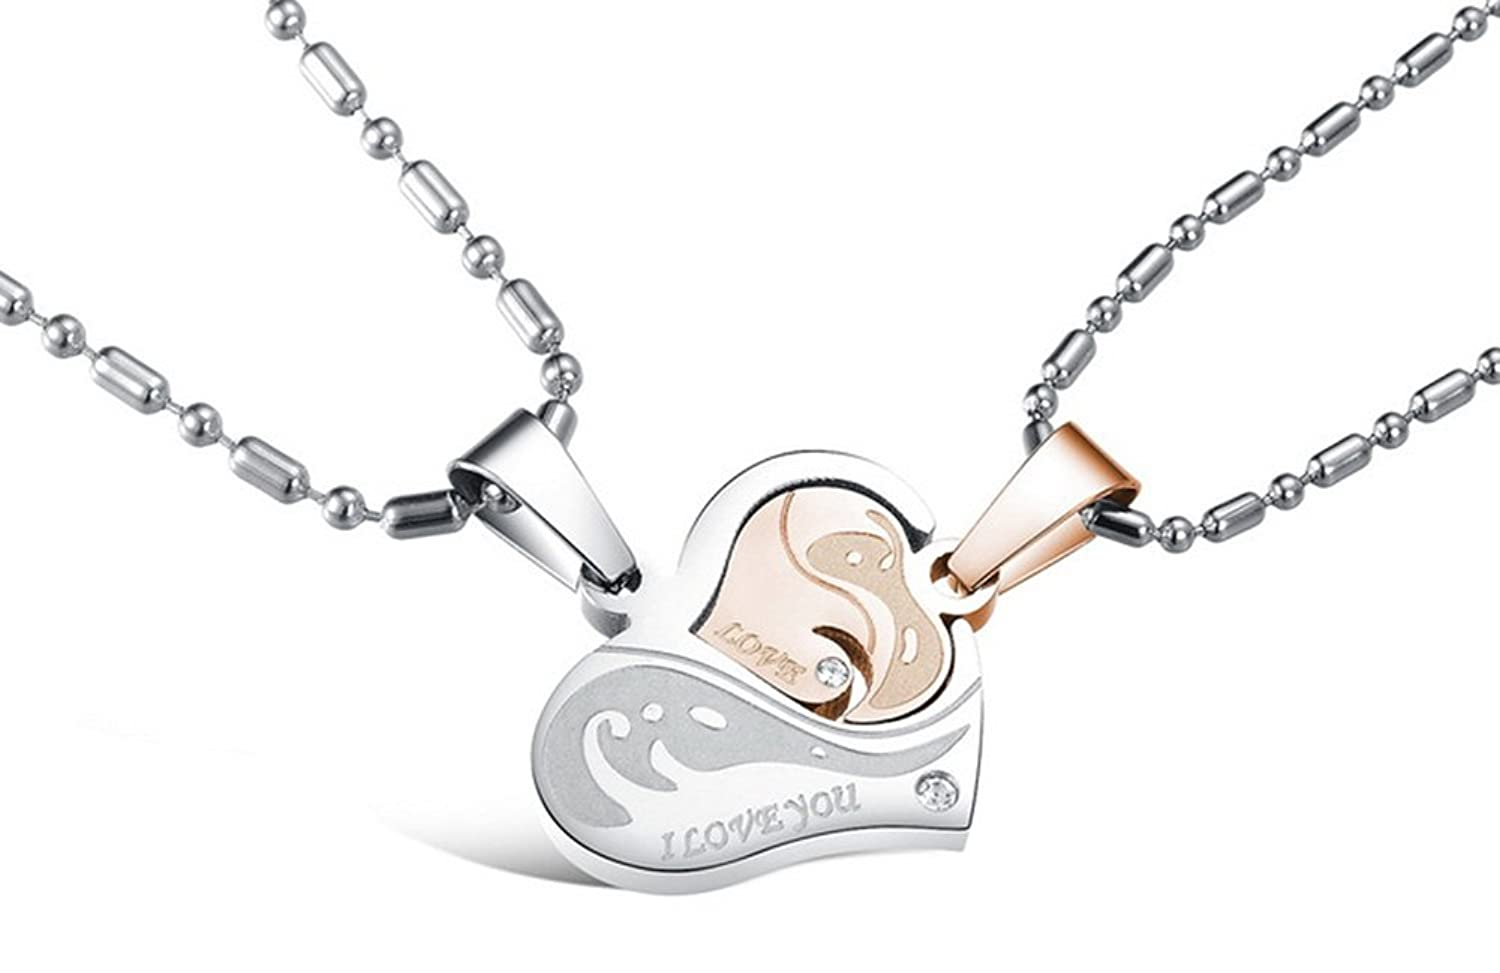 e13bcfb797 His & Hers Matching Set Titanium Stainless Steel Couples Pendant Necklace